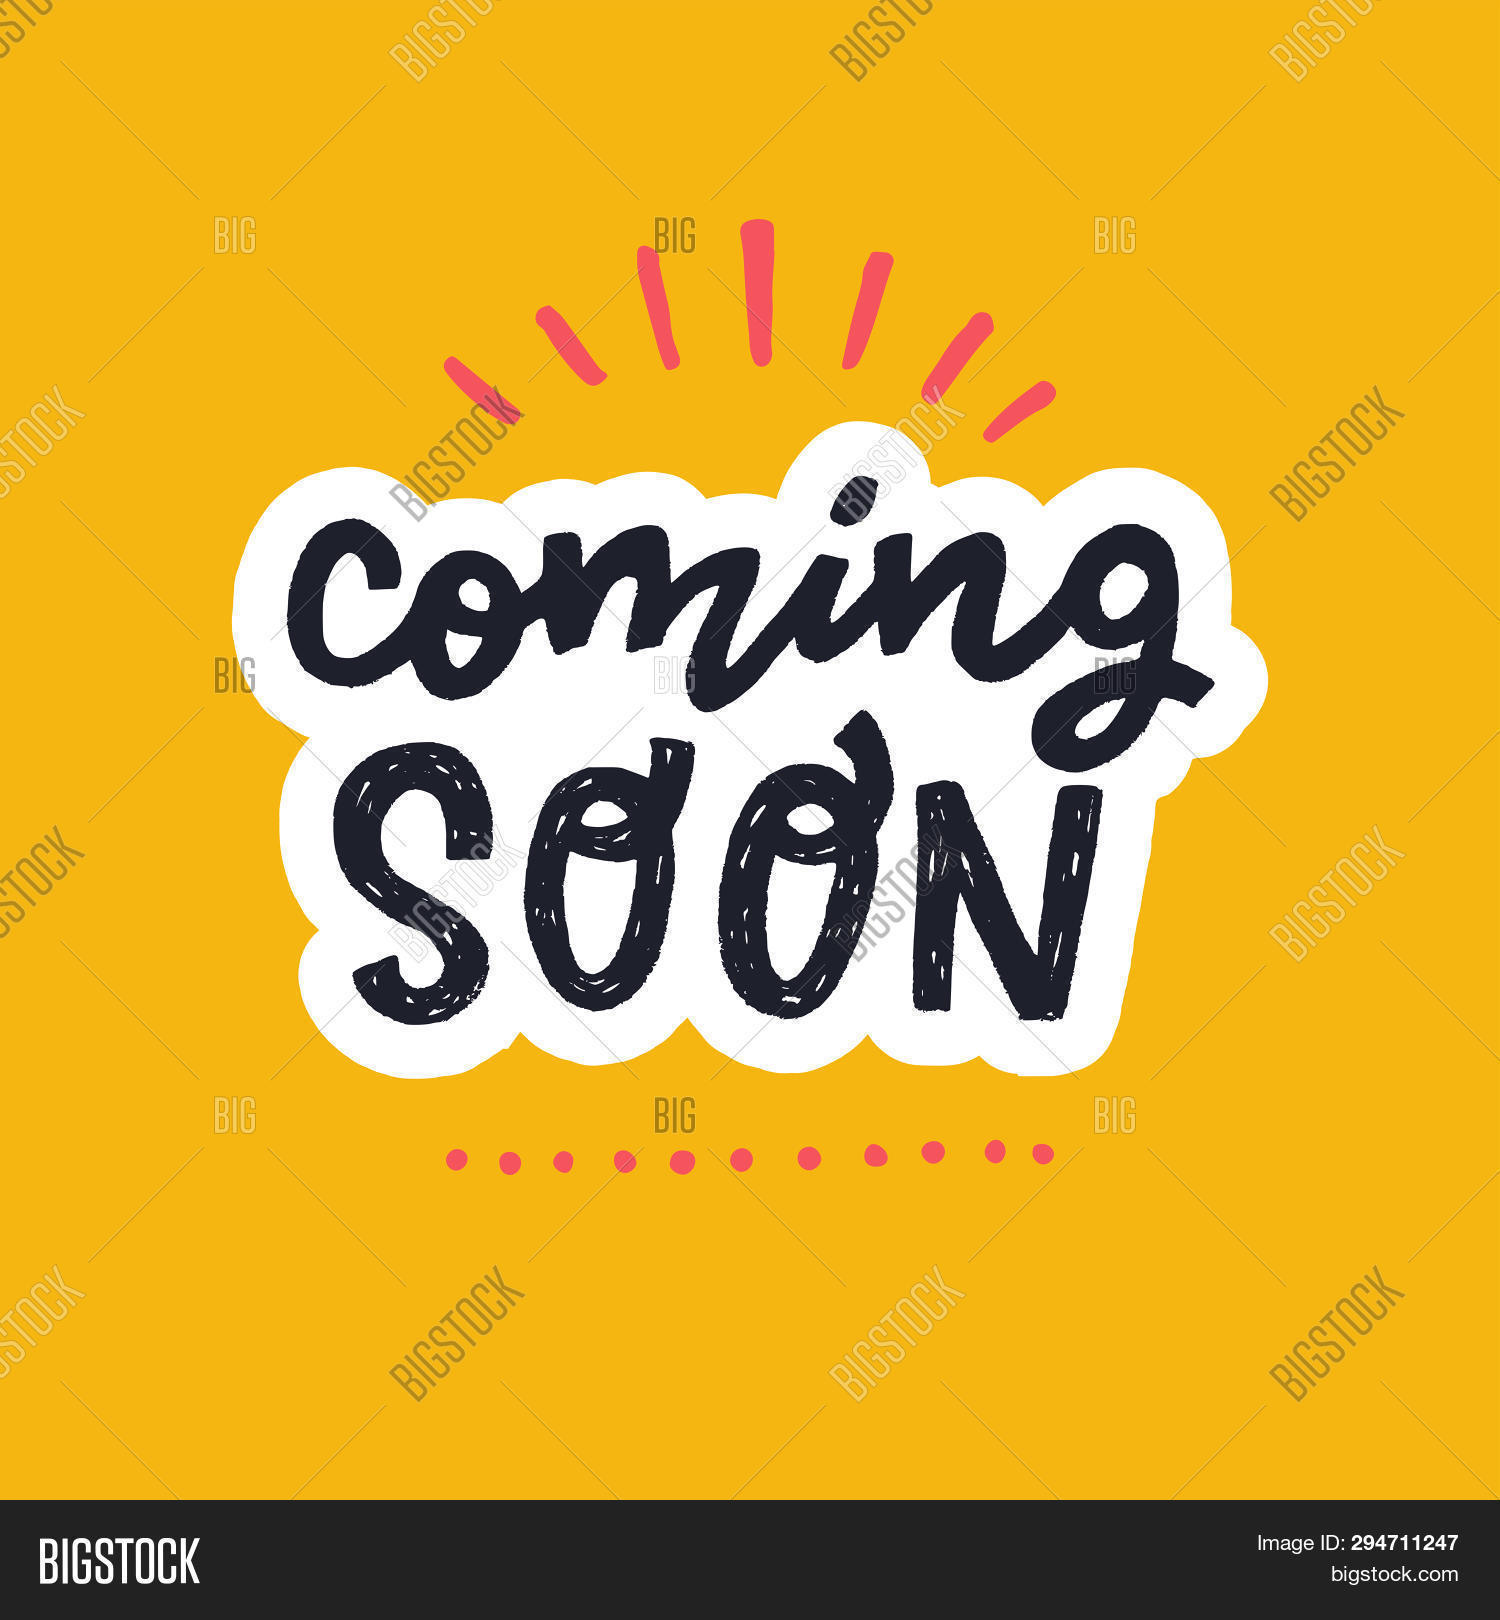 Coming Soon Hand Vector Photo Free Trial Bigstock